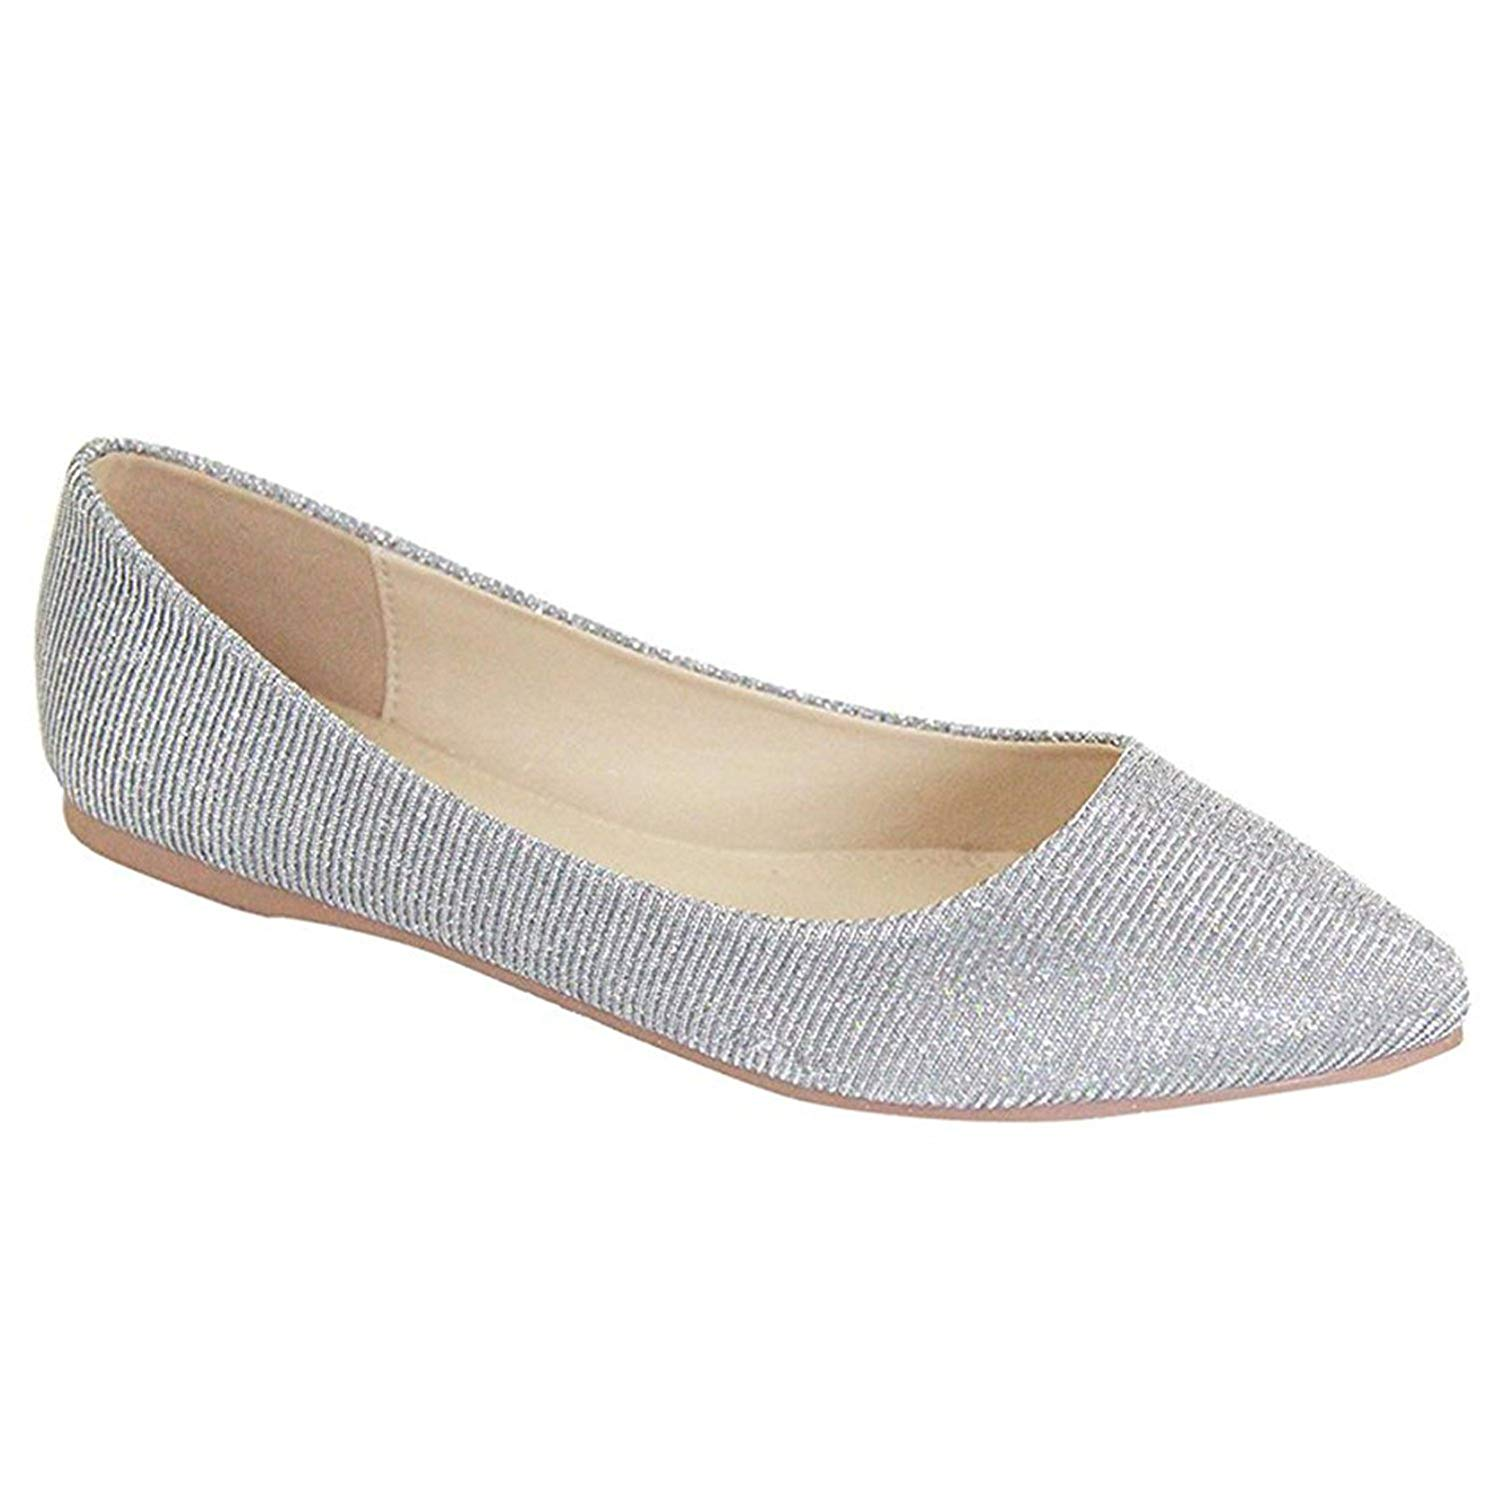 Get Quotations · Women s Classic Pointy Toe Ballet Flat Shoes Soft Casual  Dressy Slip on Loafer Flats b43c5cd95